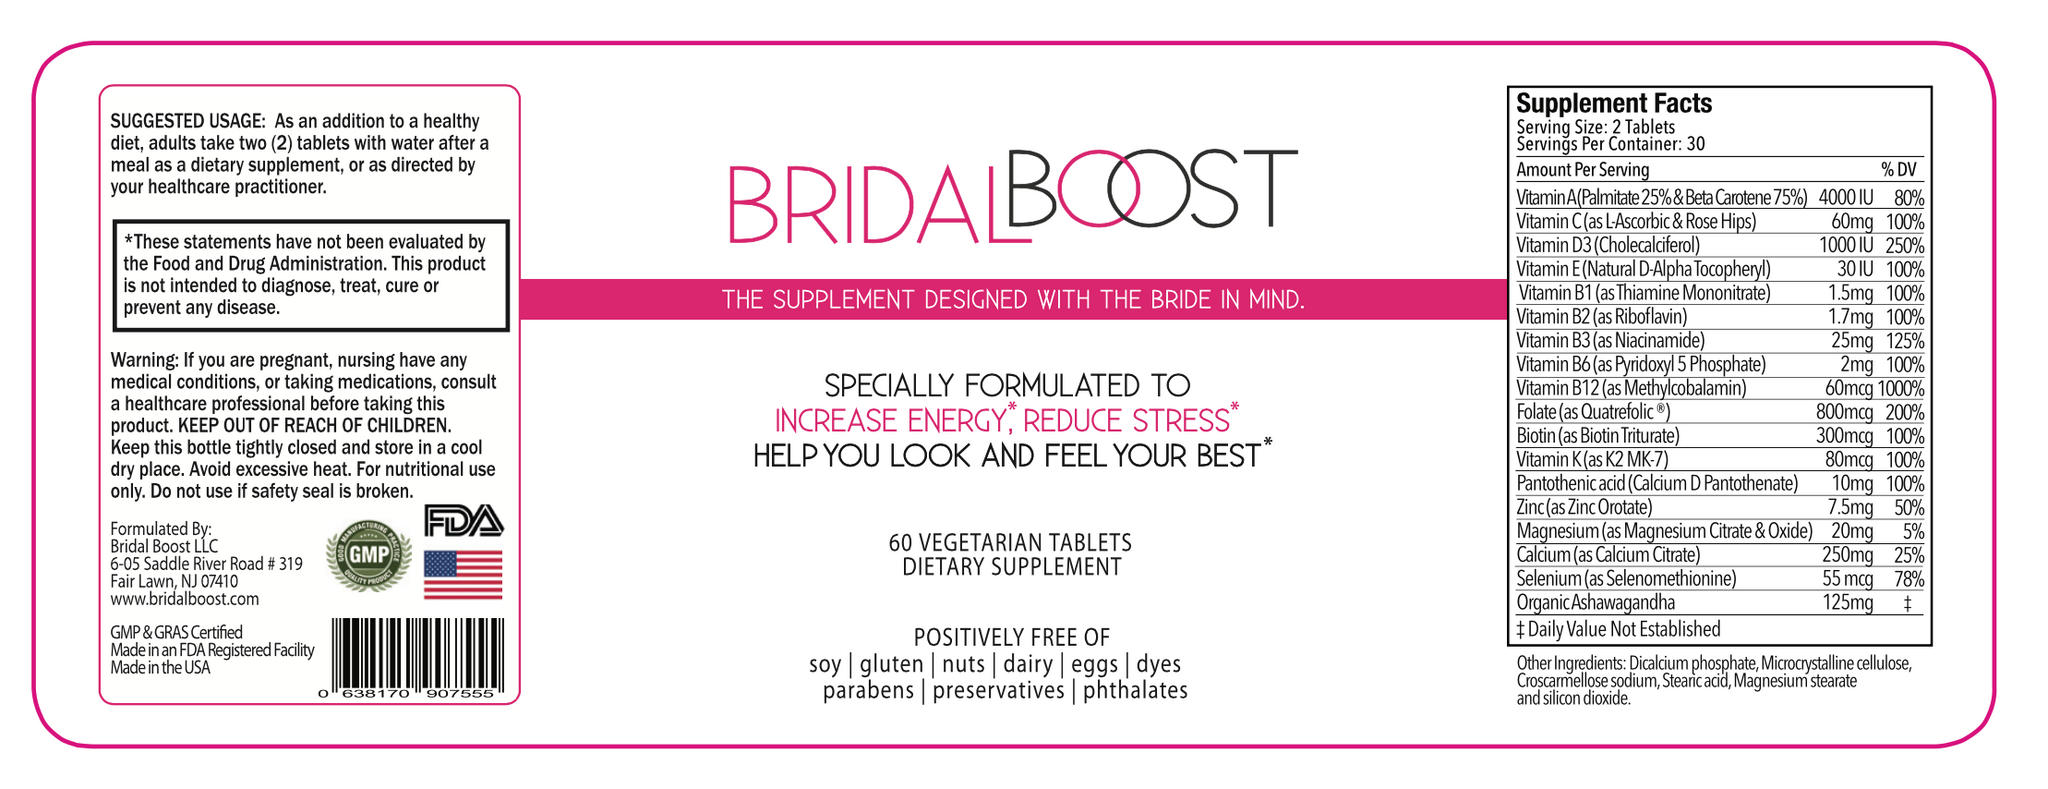 Bridal Boost Supplement Facts Label